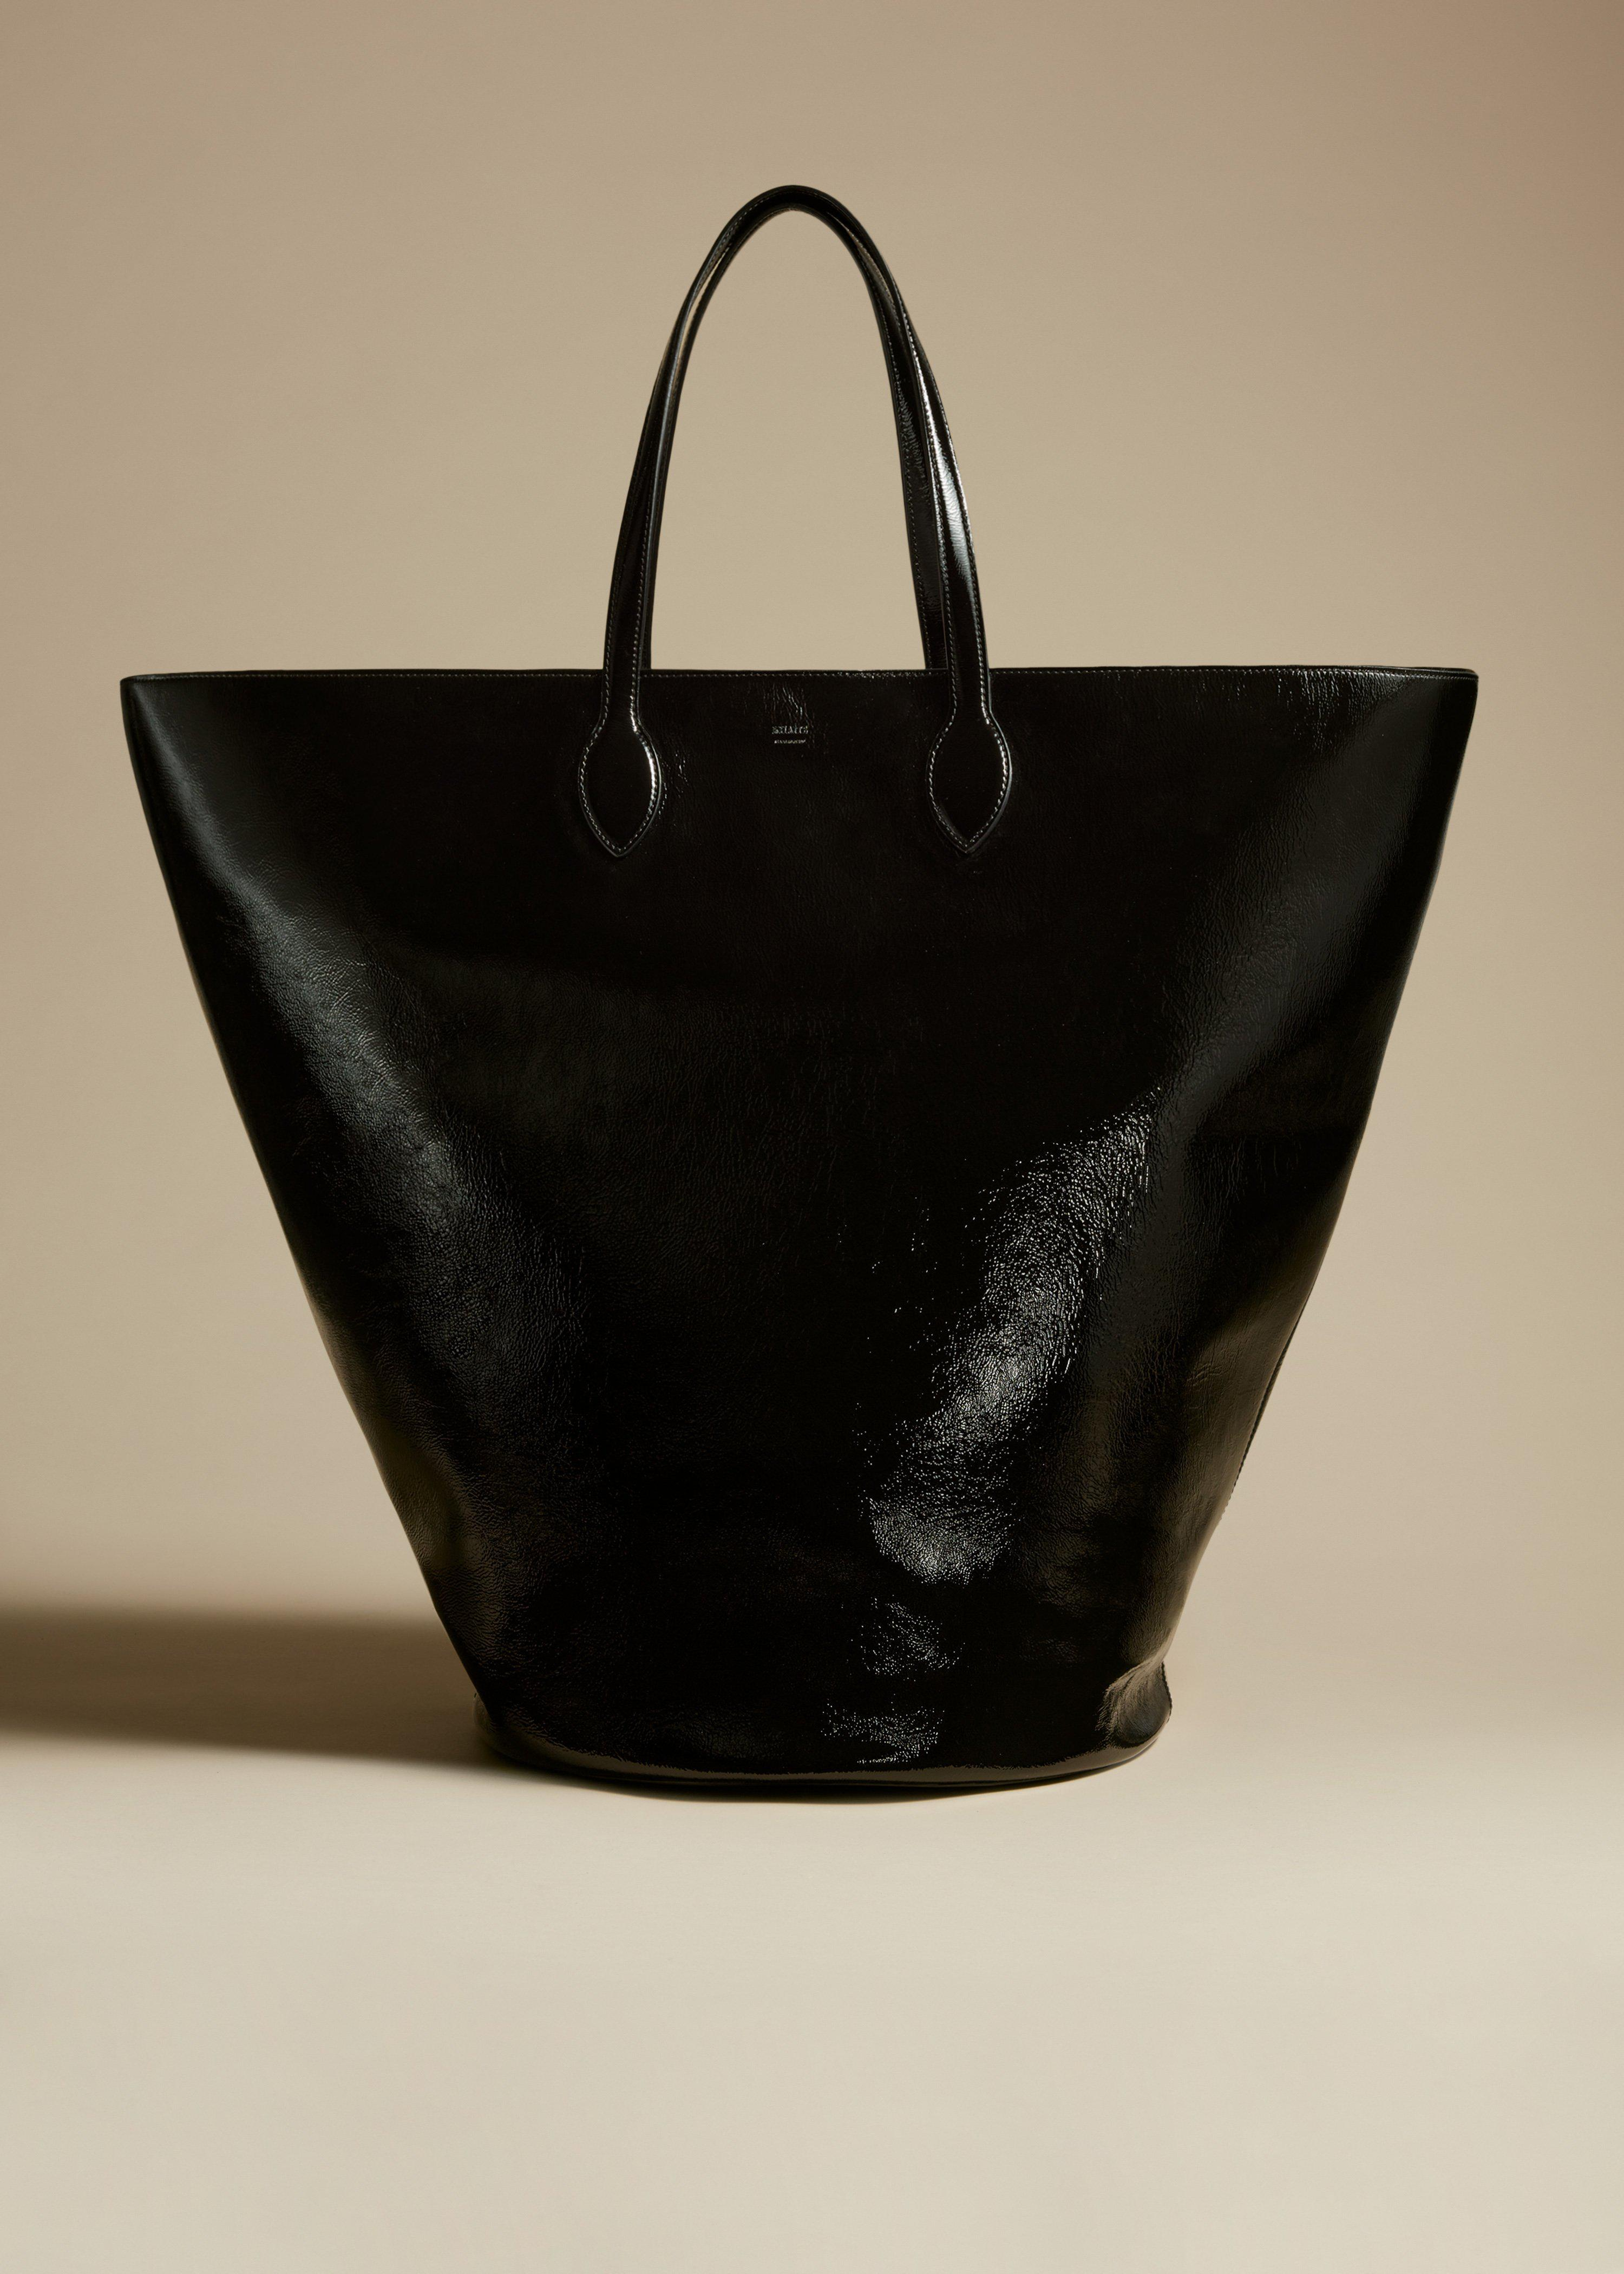 The Large Osa Tote in Black Patent Leather